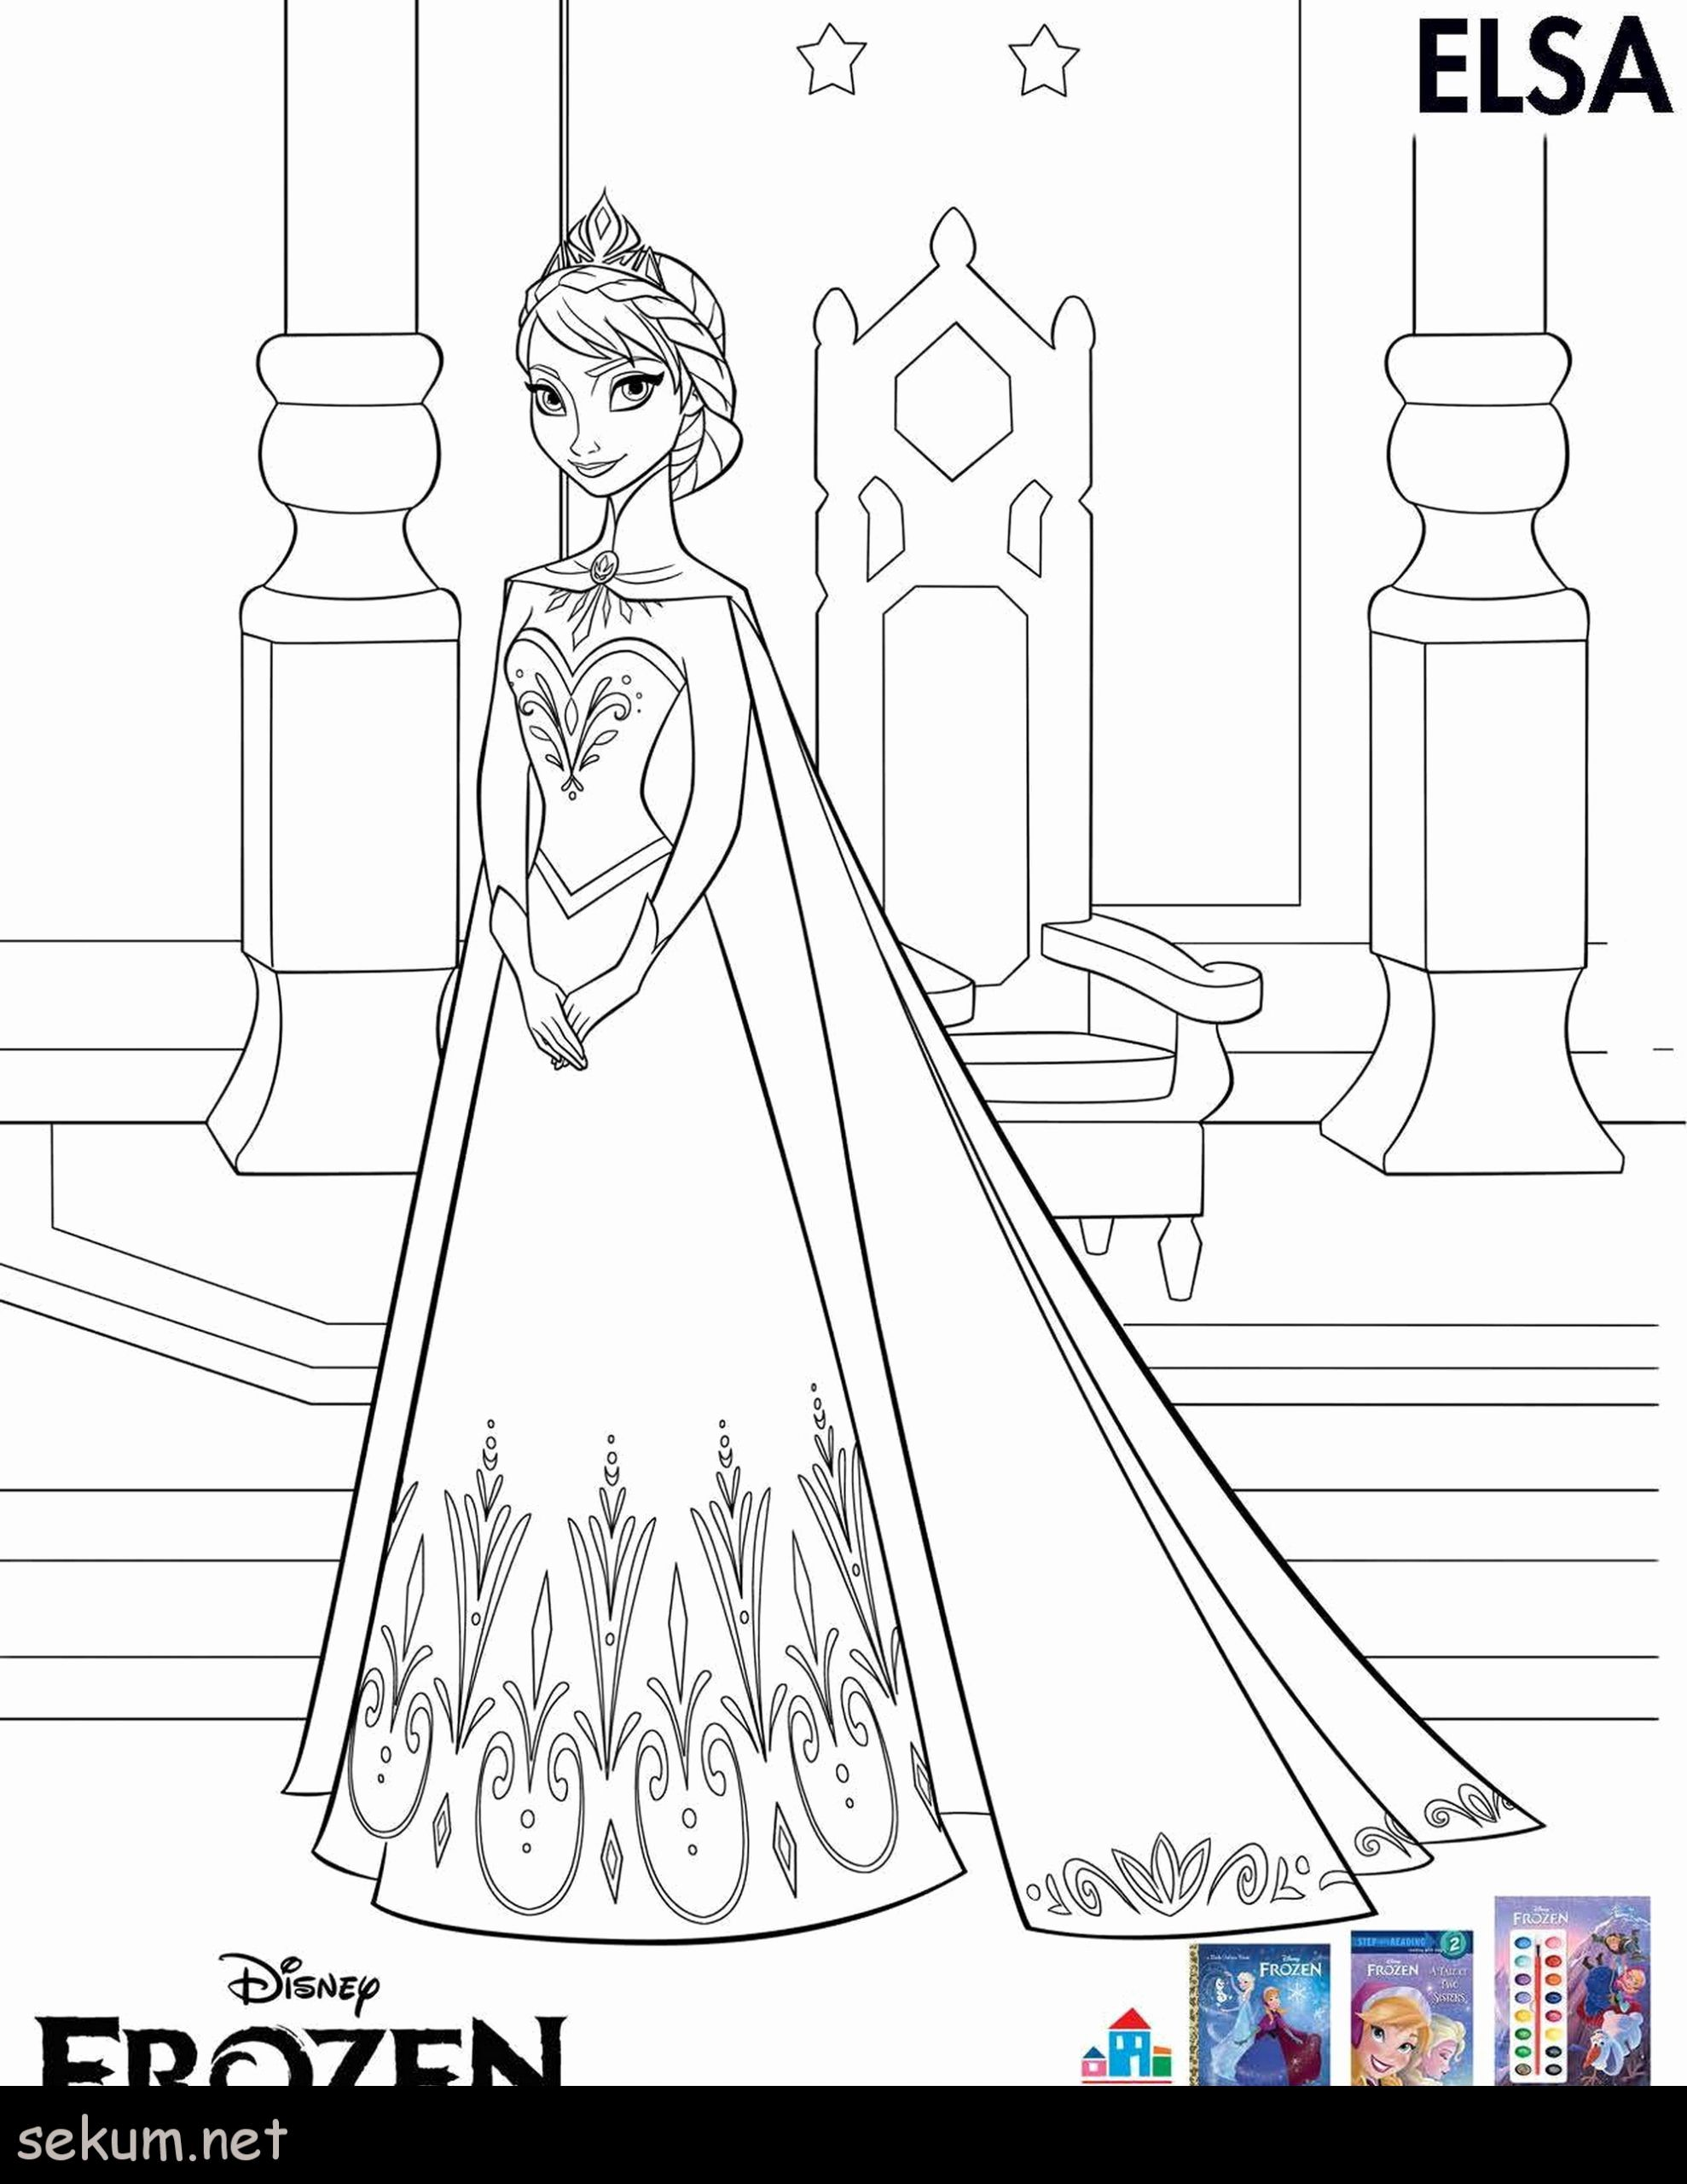 Frozen Coloring Pages Free Inspirational Coloring Book Elsa Frozen Coloring Pages To Print Free Pdf In 2020 Elsa Coloring Pages Frozen Coloring Pages Elsa Coloring